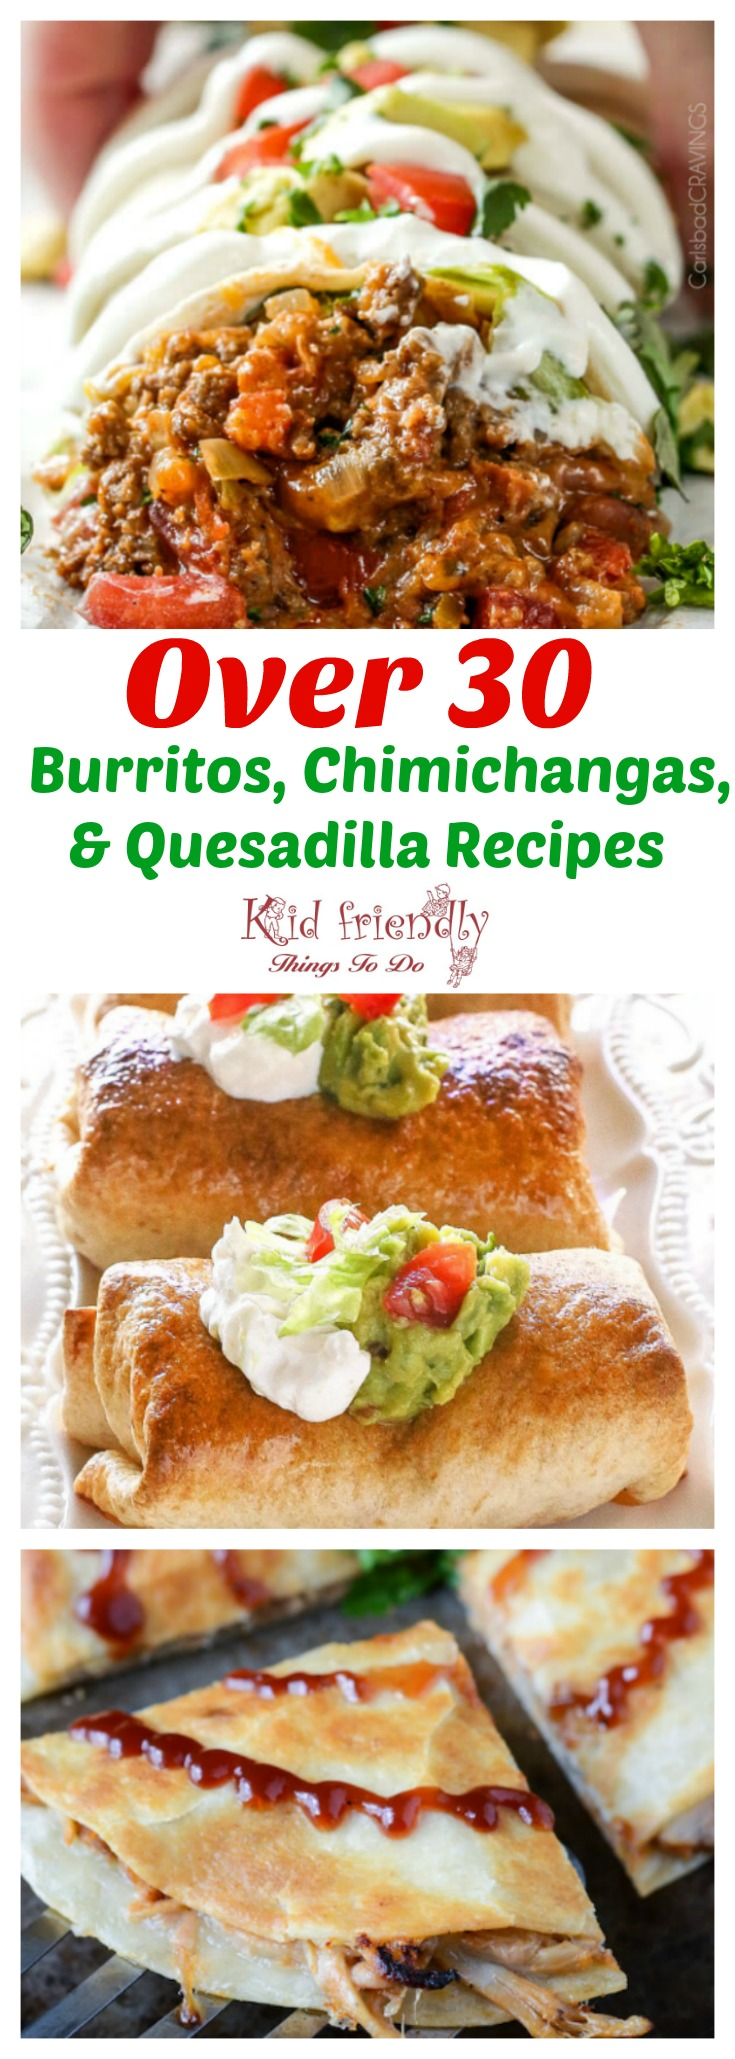 Over 30 Burrito, Chimichanga, and Quesadilla Mexican Recipes - A variety of Chicken, beef, smothered, baked, and even dessert recipes. delicious recipes - www.kidfriendlythingstodo.com